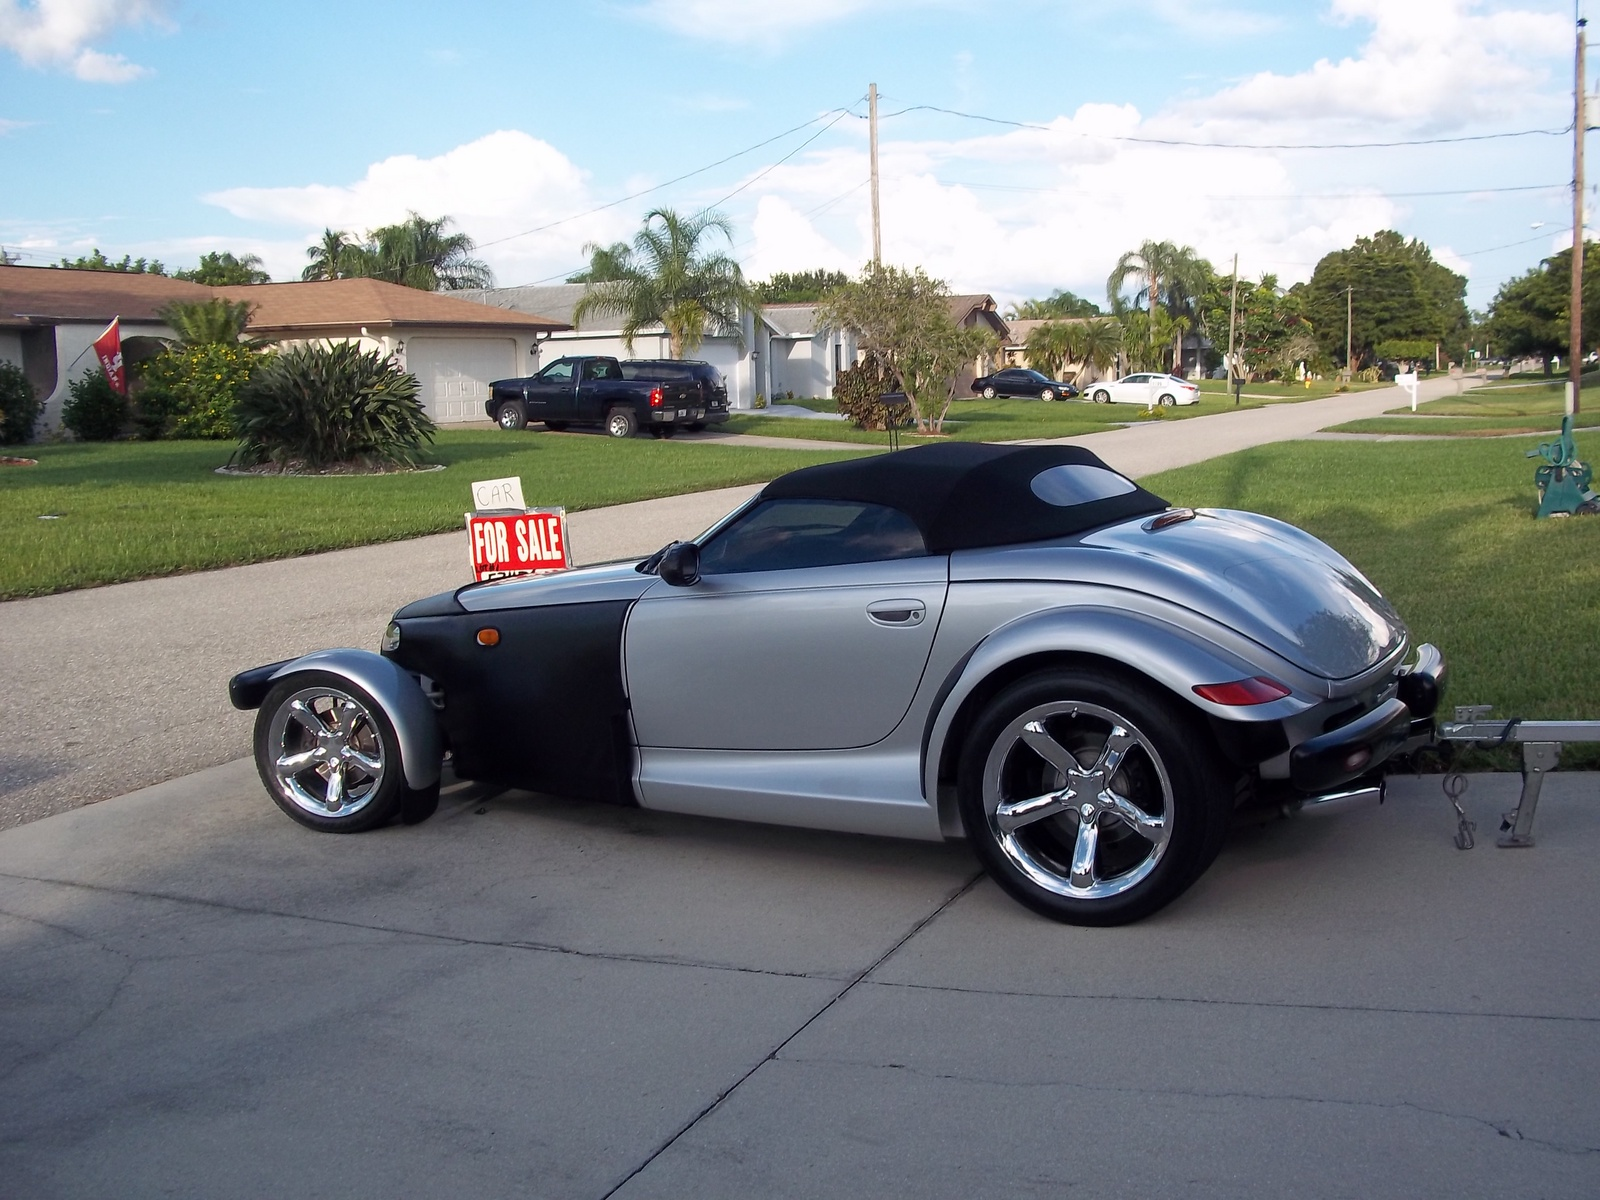 Collectioncdwn Chrysler Prowler For Sale as well 3418 Chrysler 2Bsebring Page 1 in addition 1966 Plymouth Satellite Overview C16959 further Chrysler crossfire 2008 together with Chrysler voyager 2003. on plymouth prowler specs